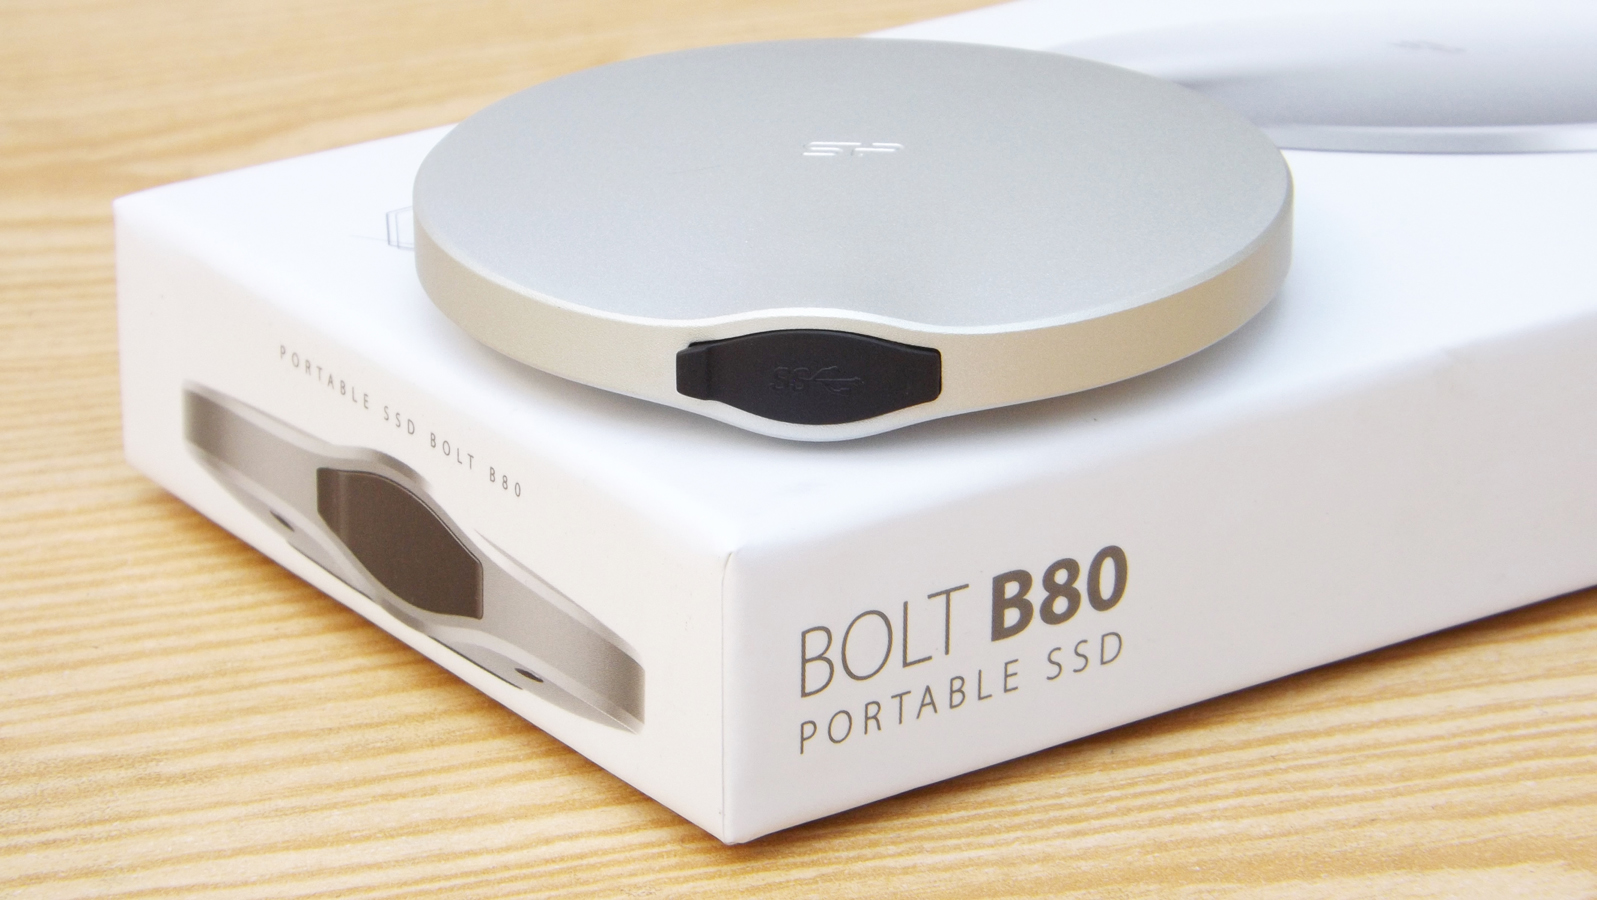 Silicon Power Bolt B80 120GB Portable SSD Review - Dragon Blogger Technology